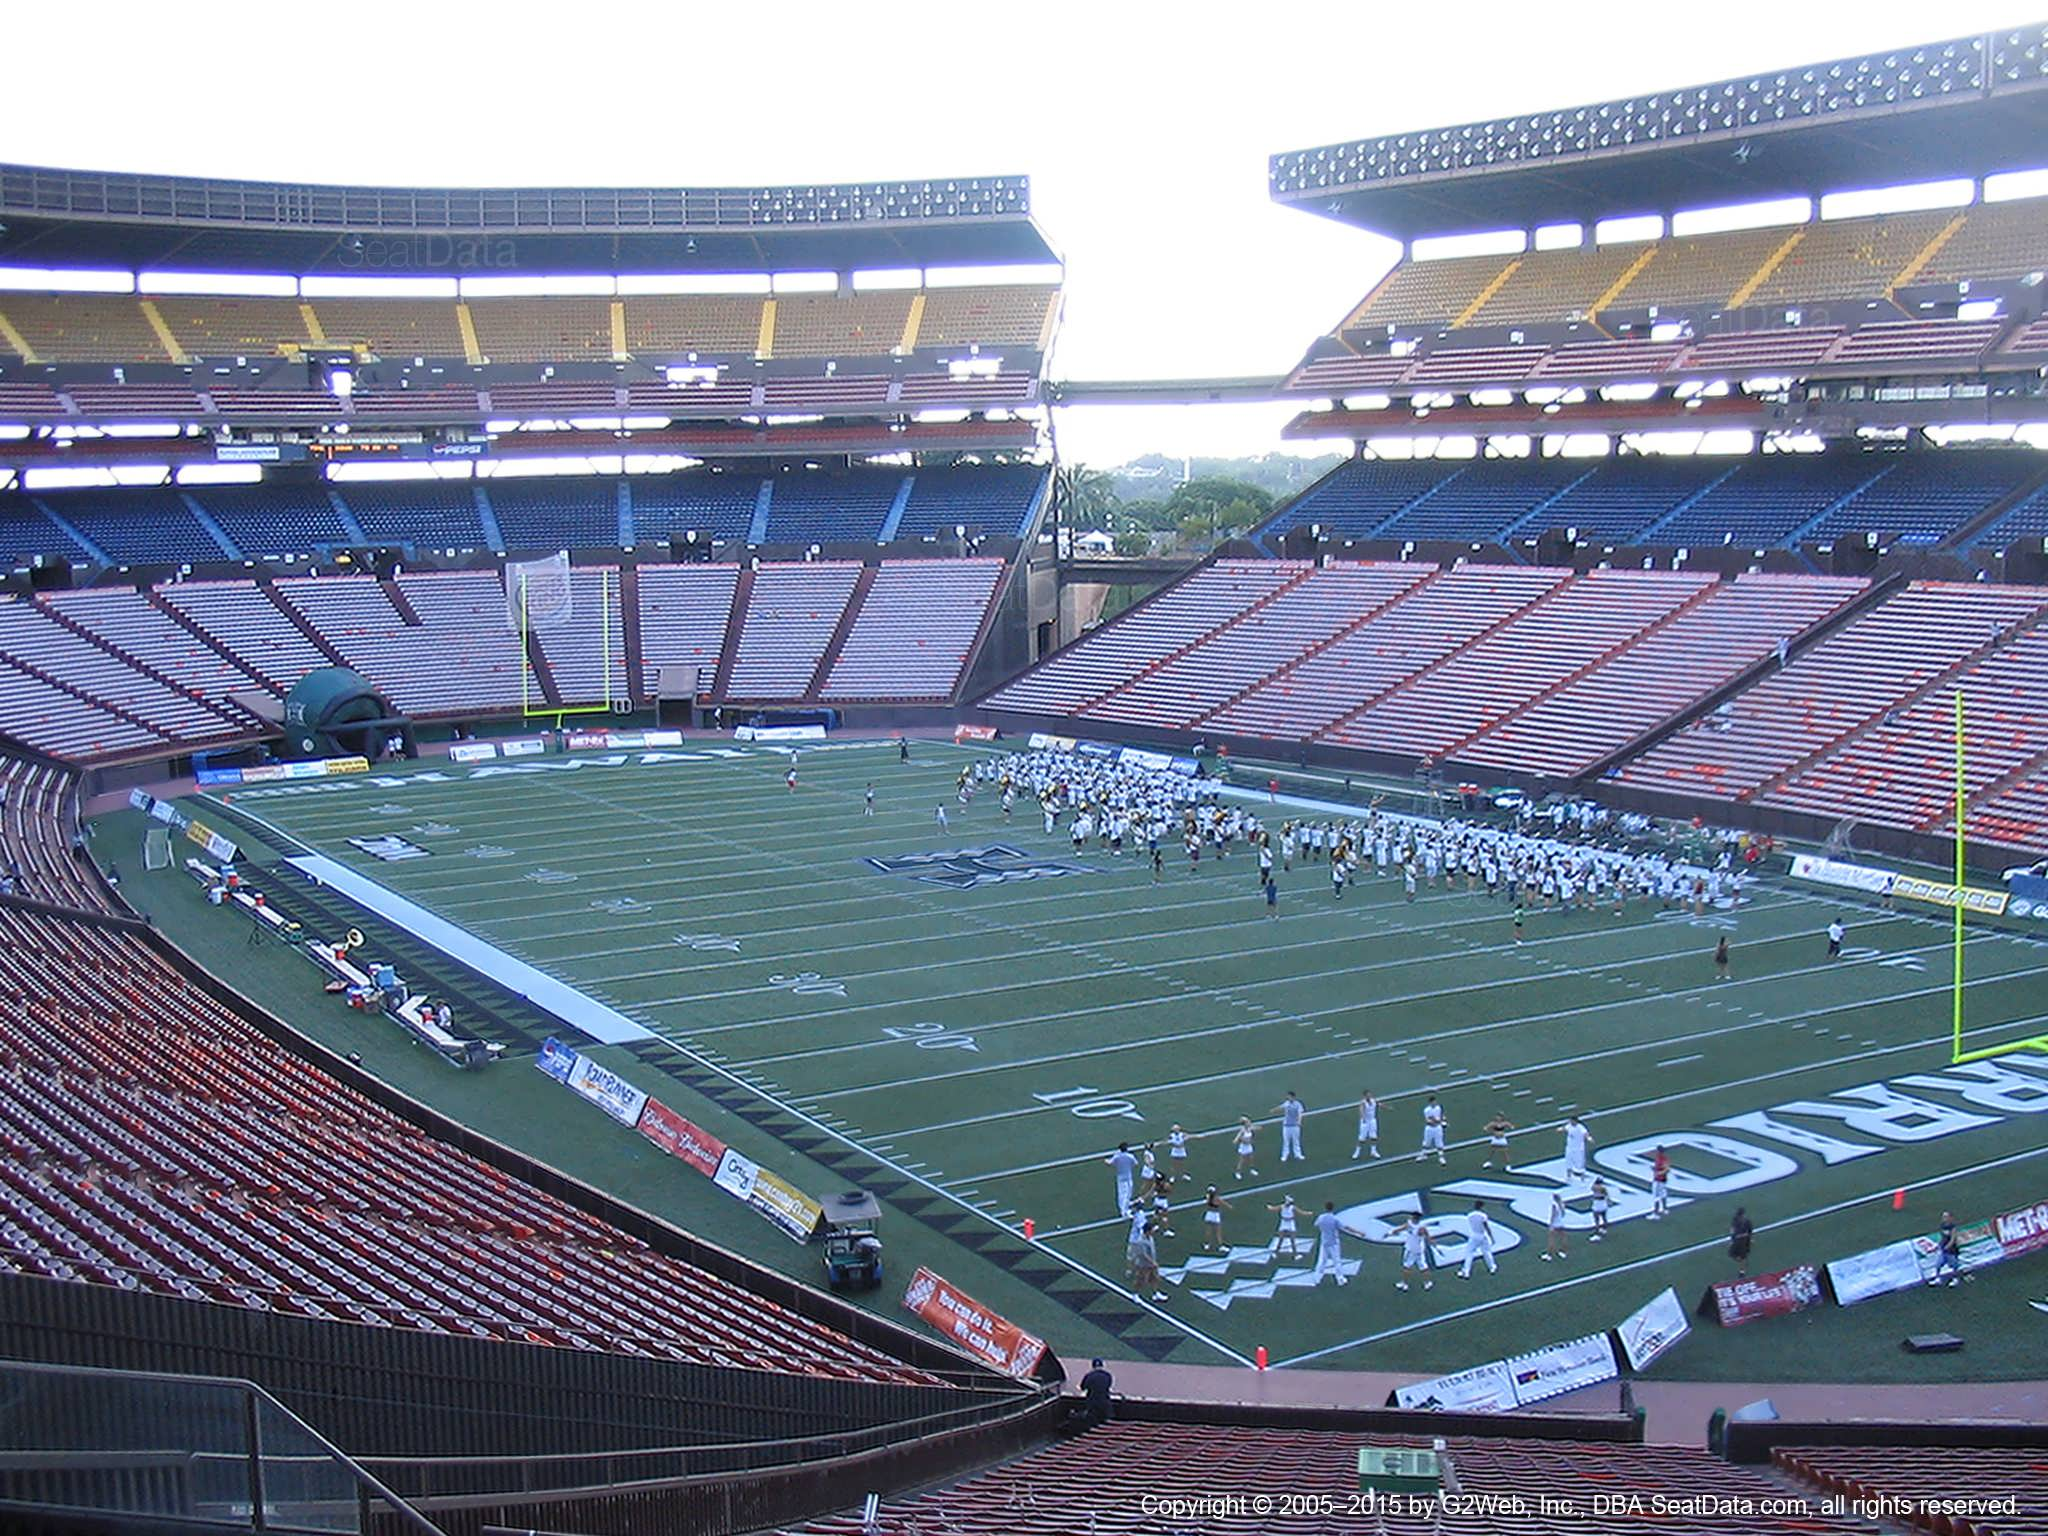 Seat View for Aloha Stadium Blue RR